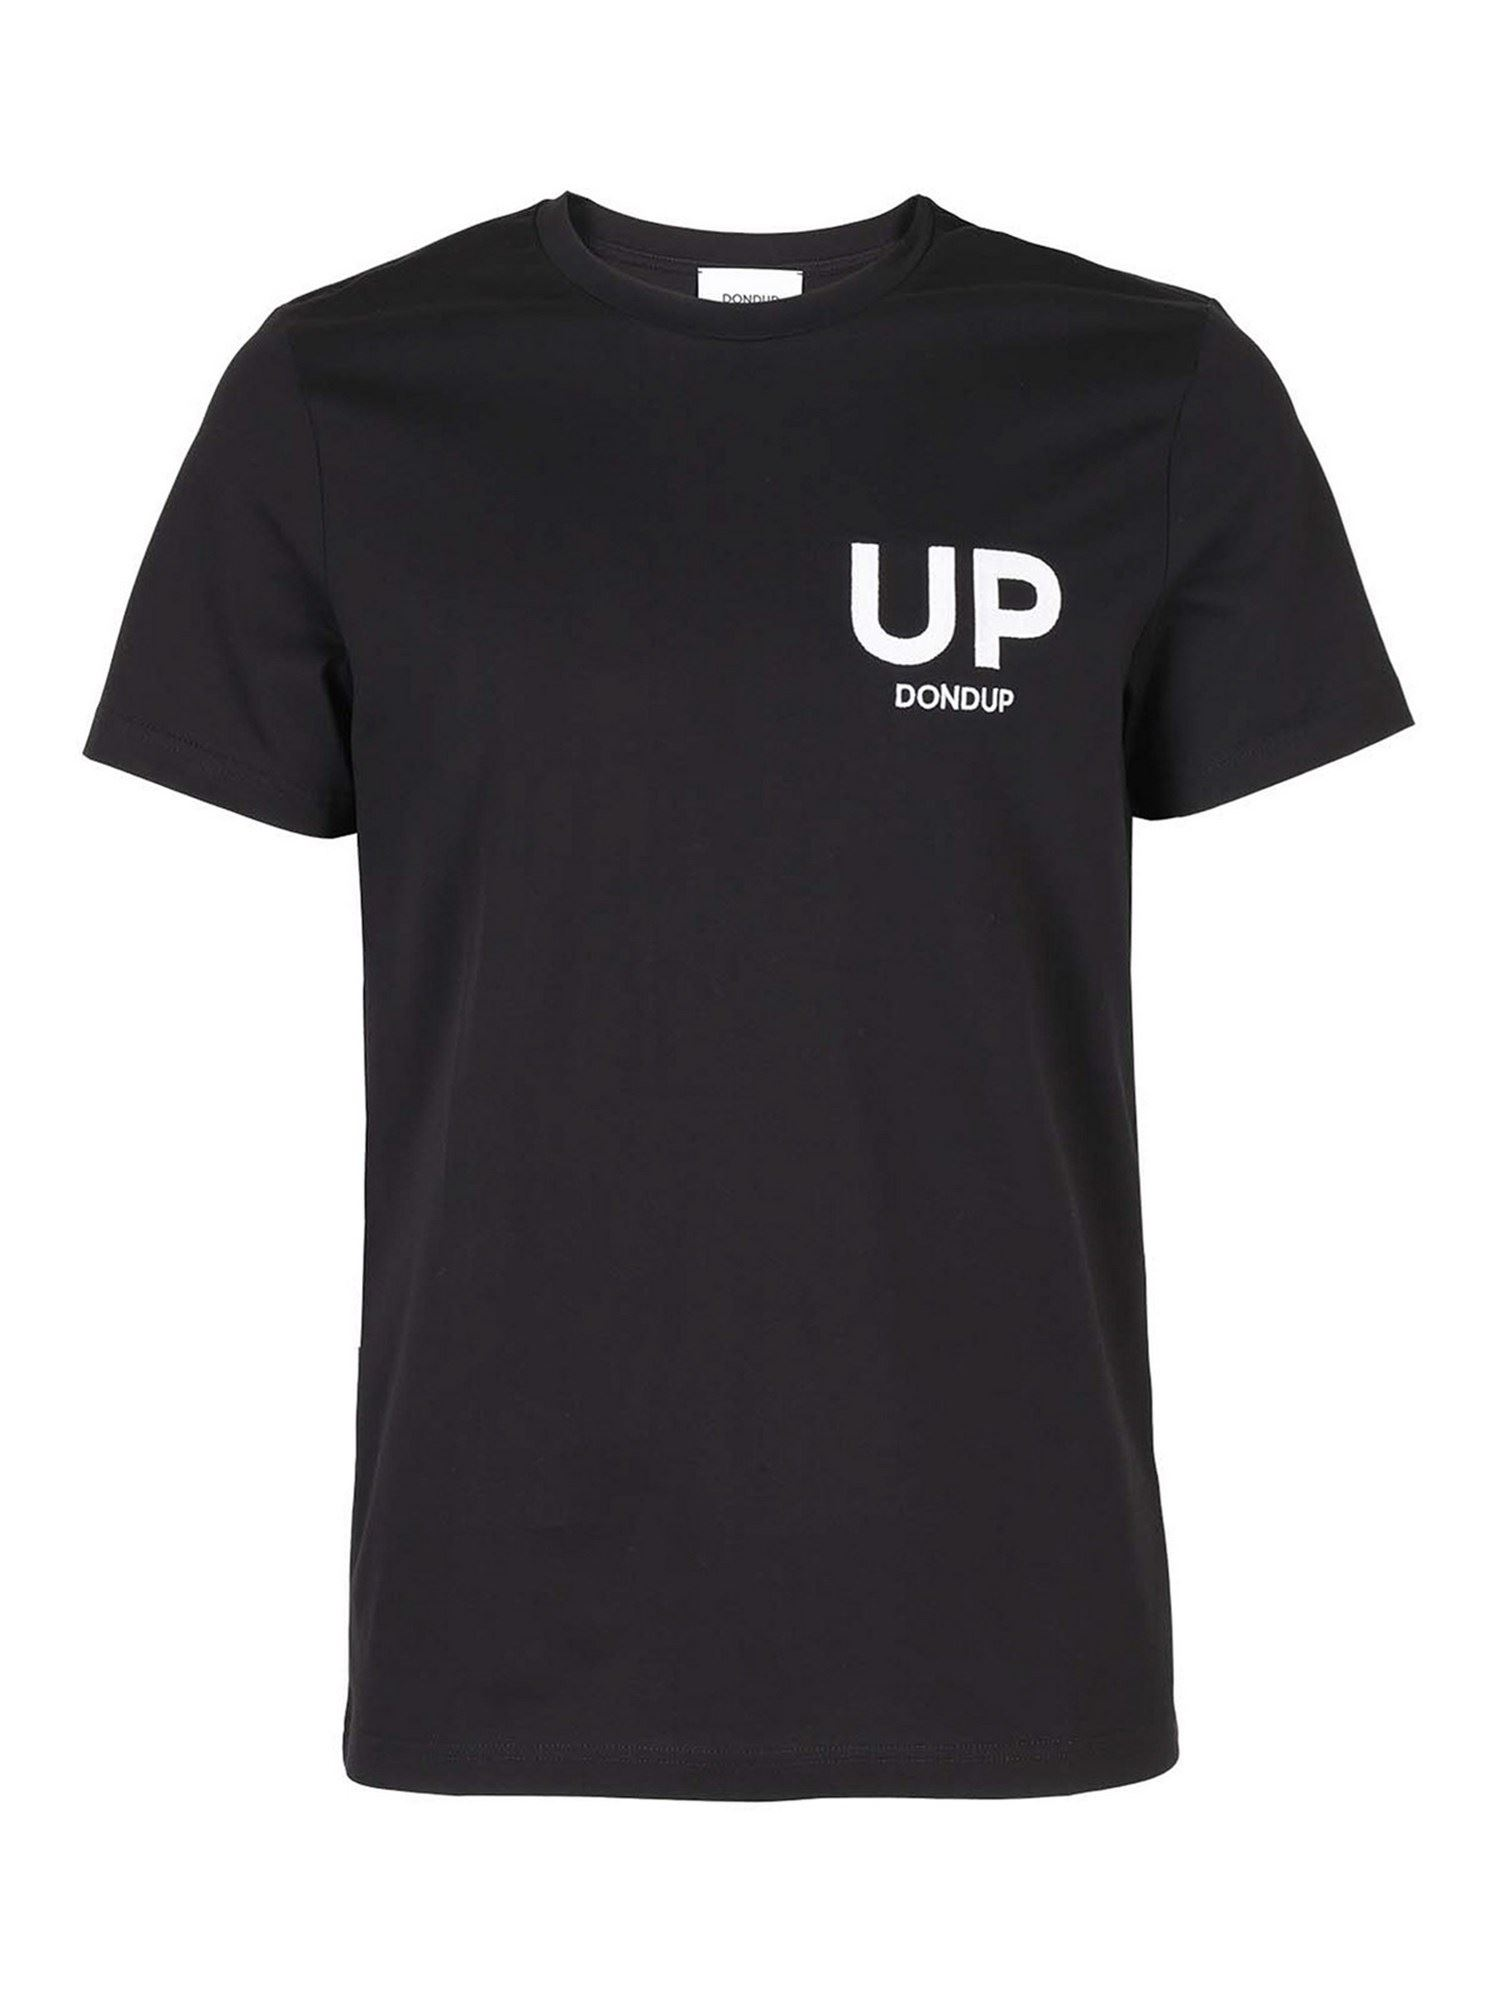 Dondup UP T-SHIRT IN BLACK